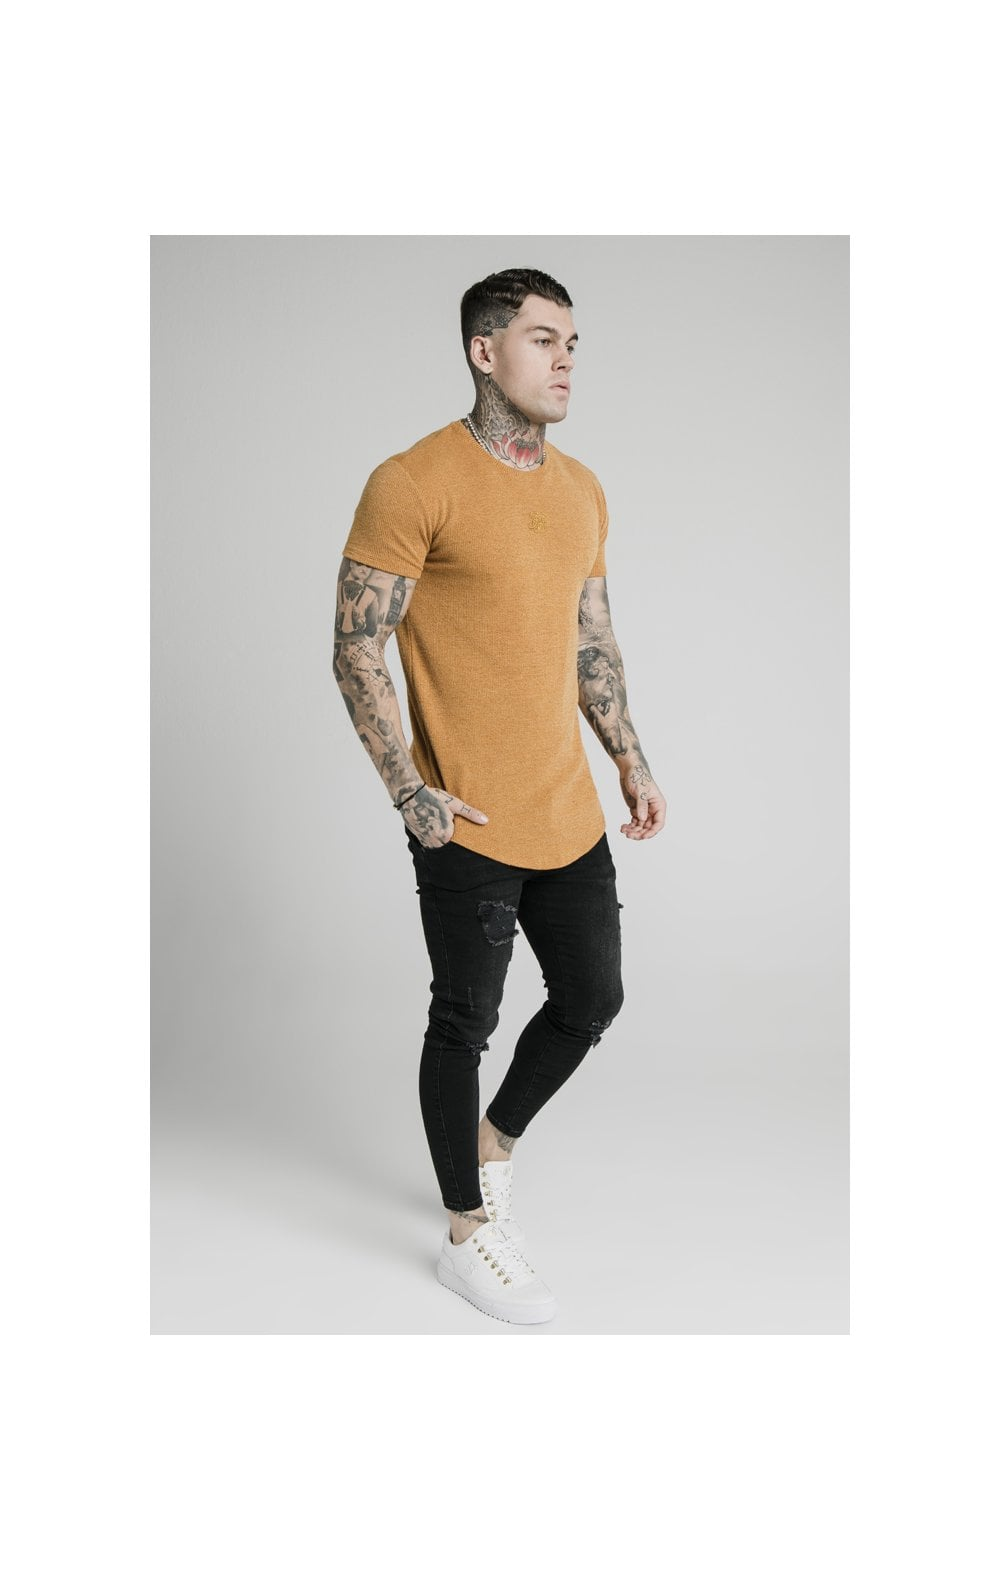 Load image into Gallery viewer, SikSilk Rib Knit Gym Tee - Yellow (4)